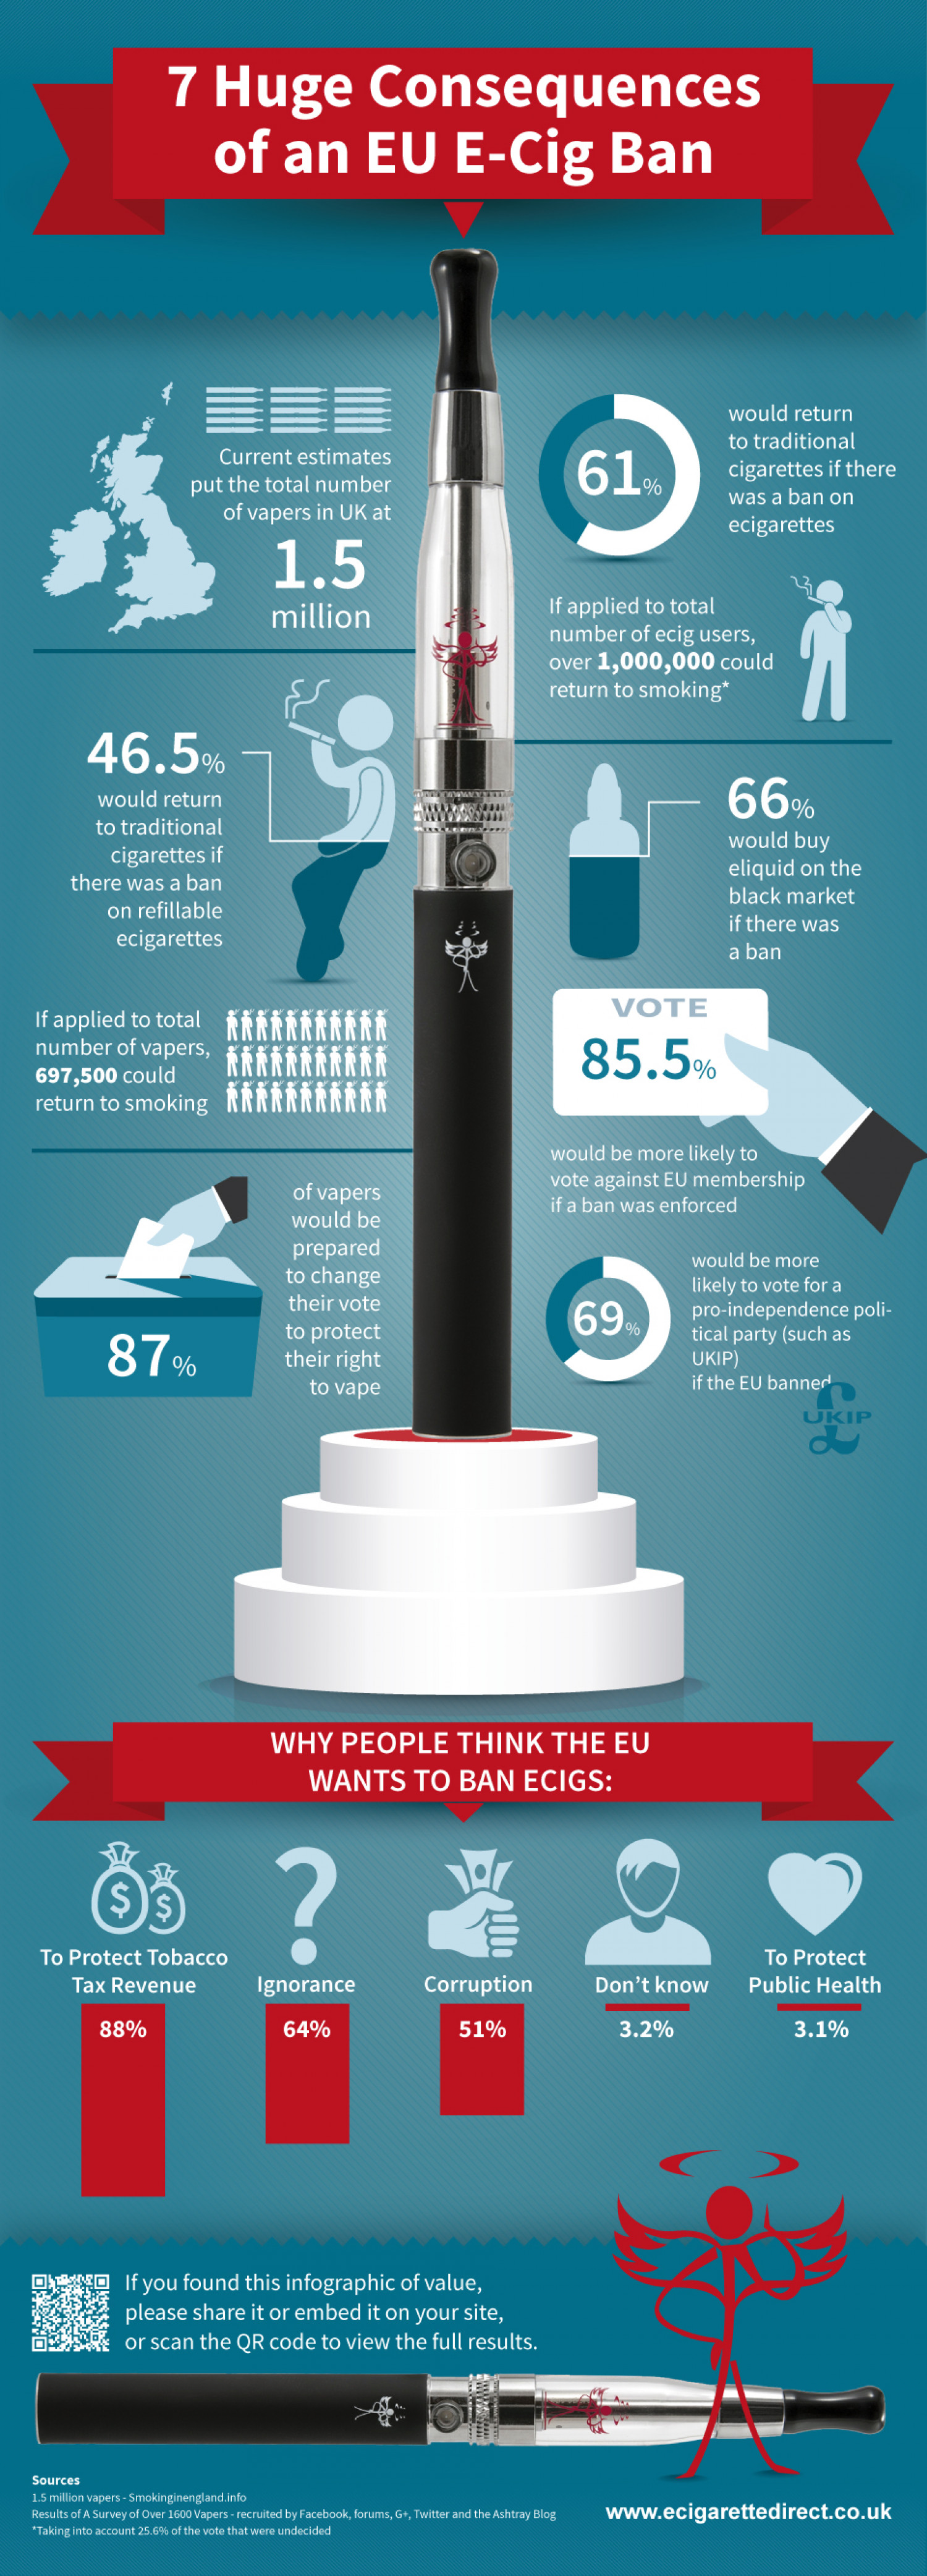 7 Huge Consequences of an EU E-Cig Ban Infographic